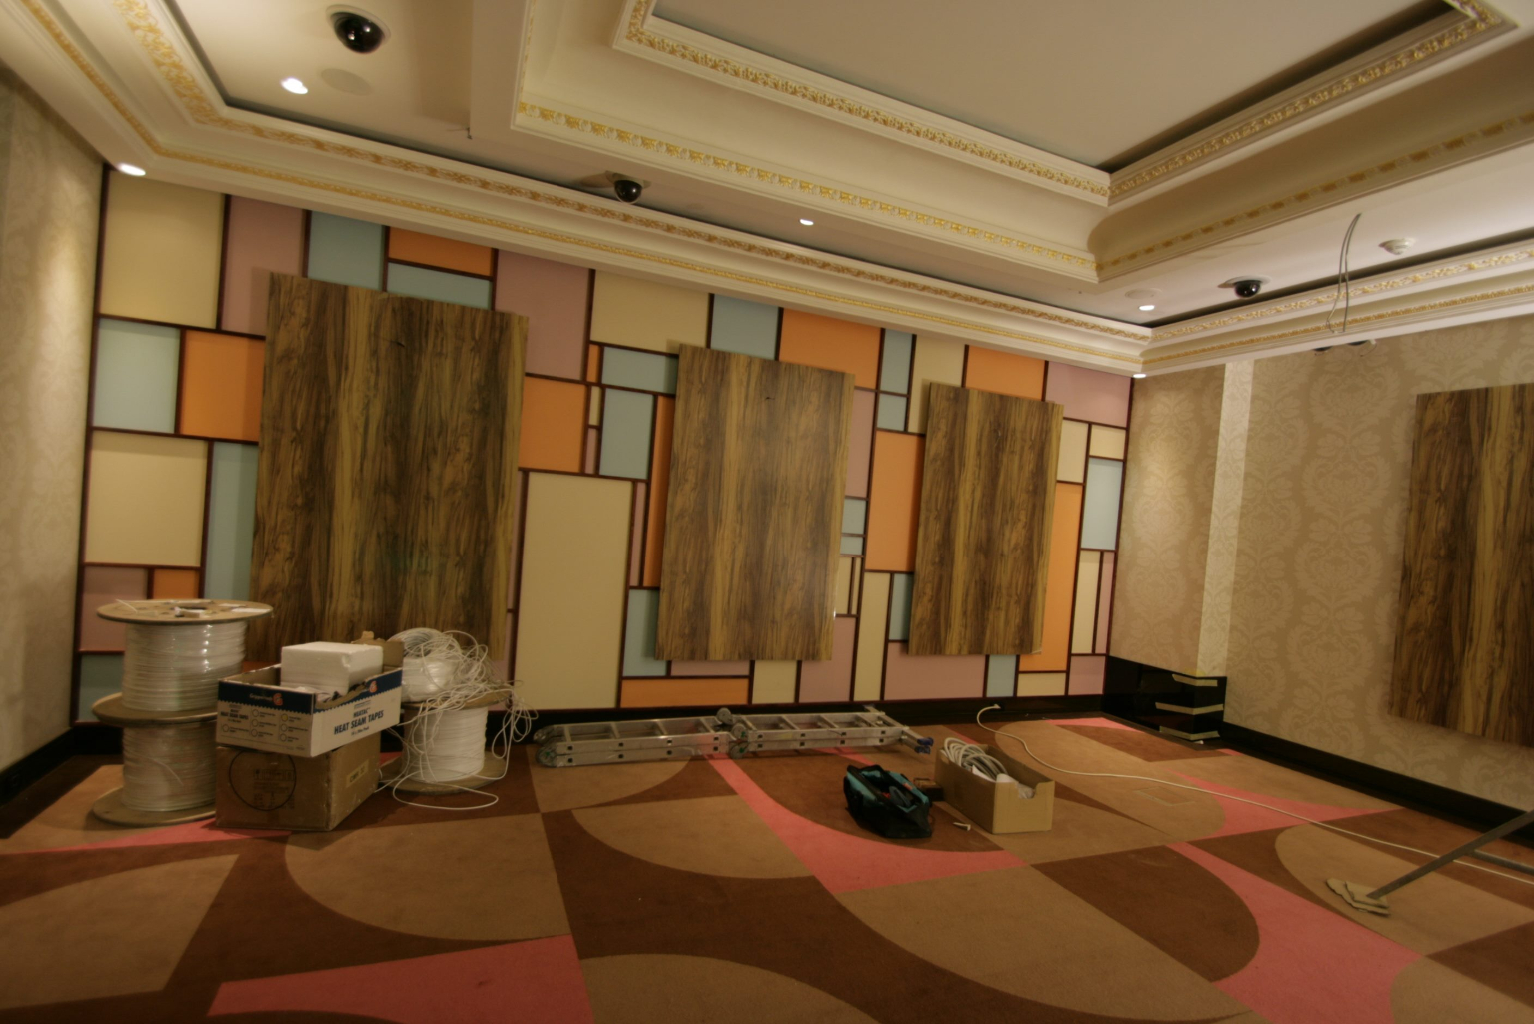 Grand Casino Marriott Bucuresti Bucharest placari pereti rame receptii usi bar bufet207